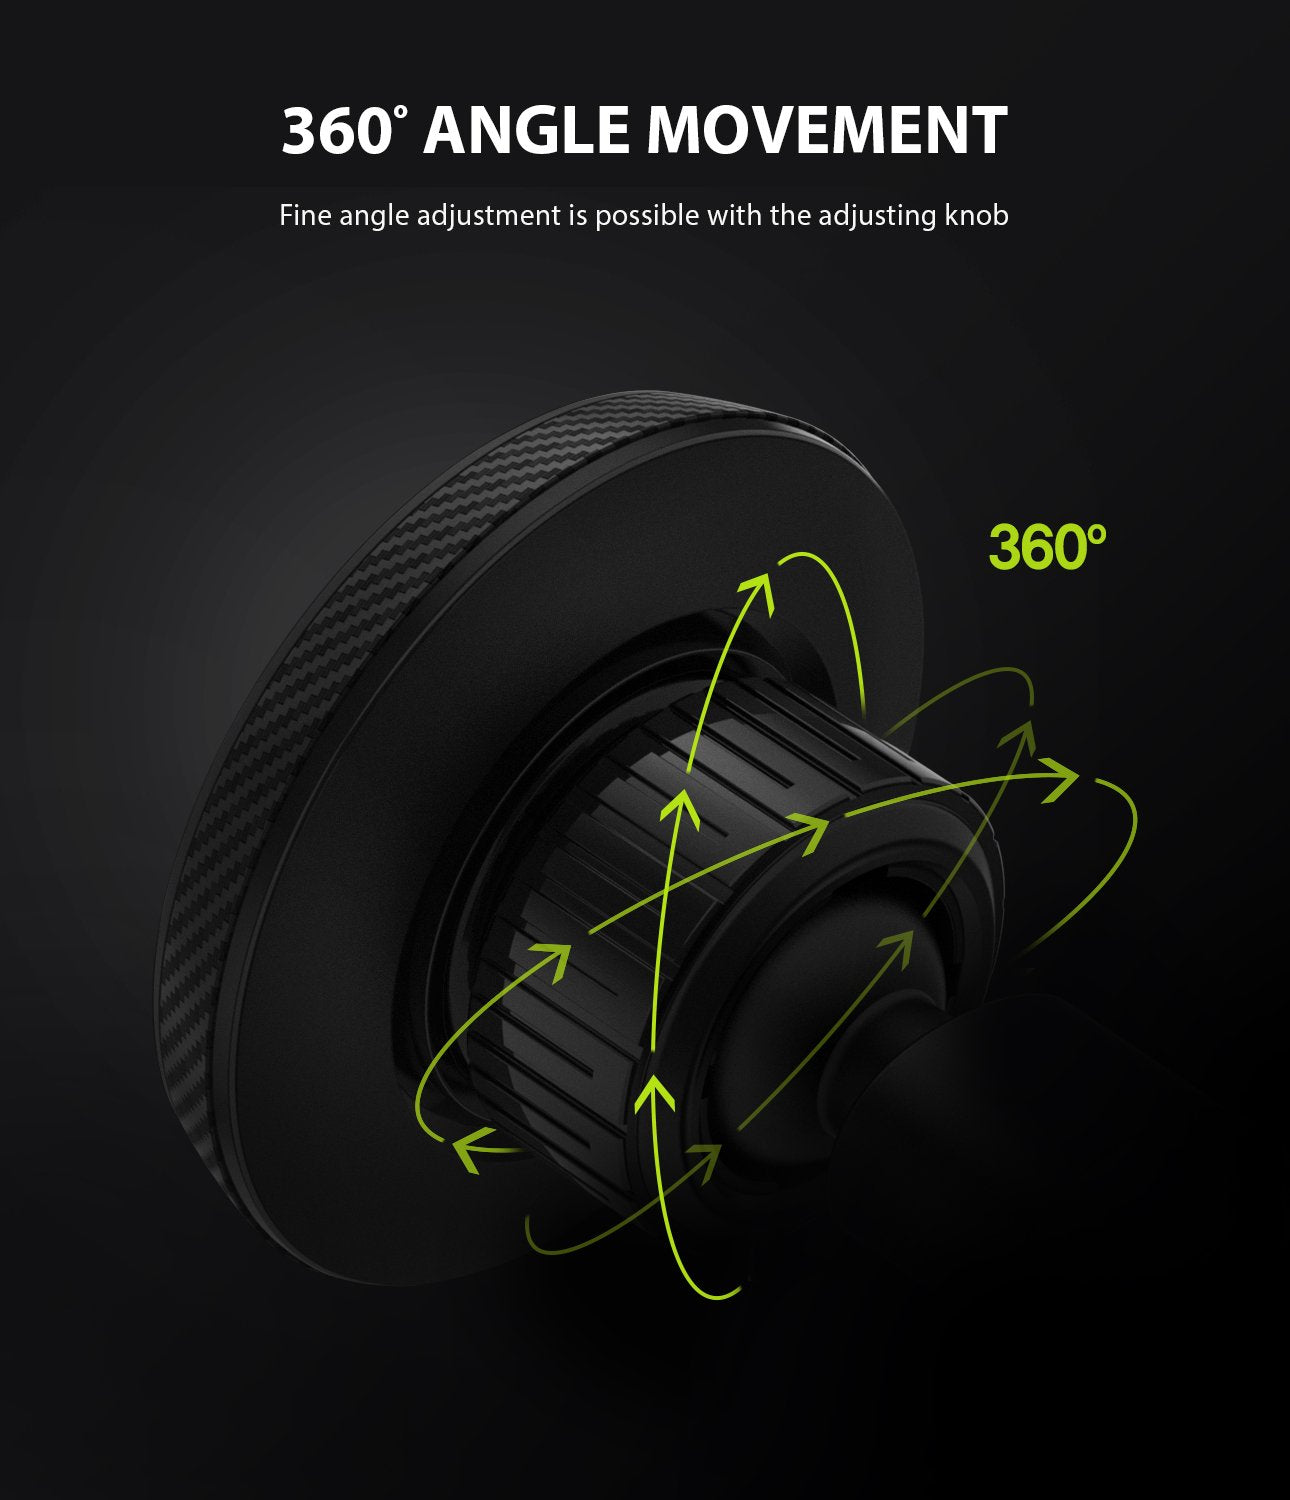 ringke cd slot 2 in 1 car mount  360 degrees movement